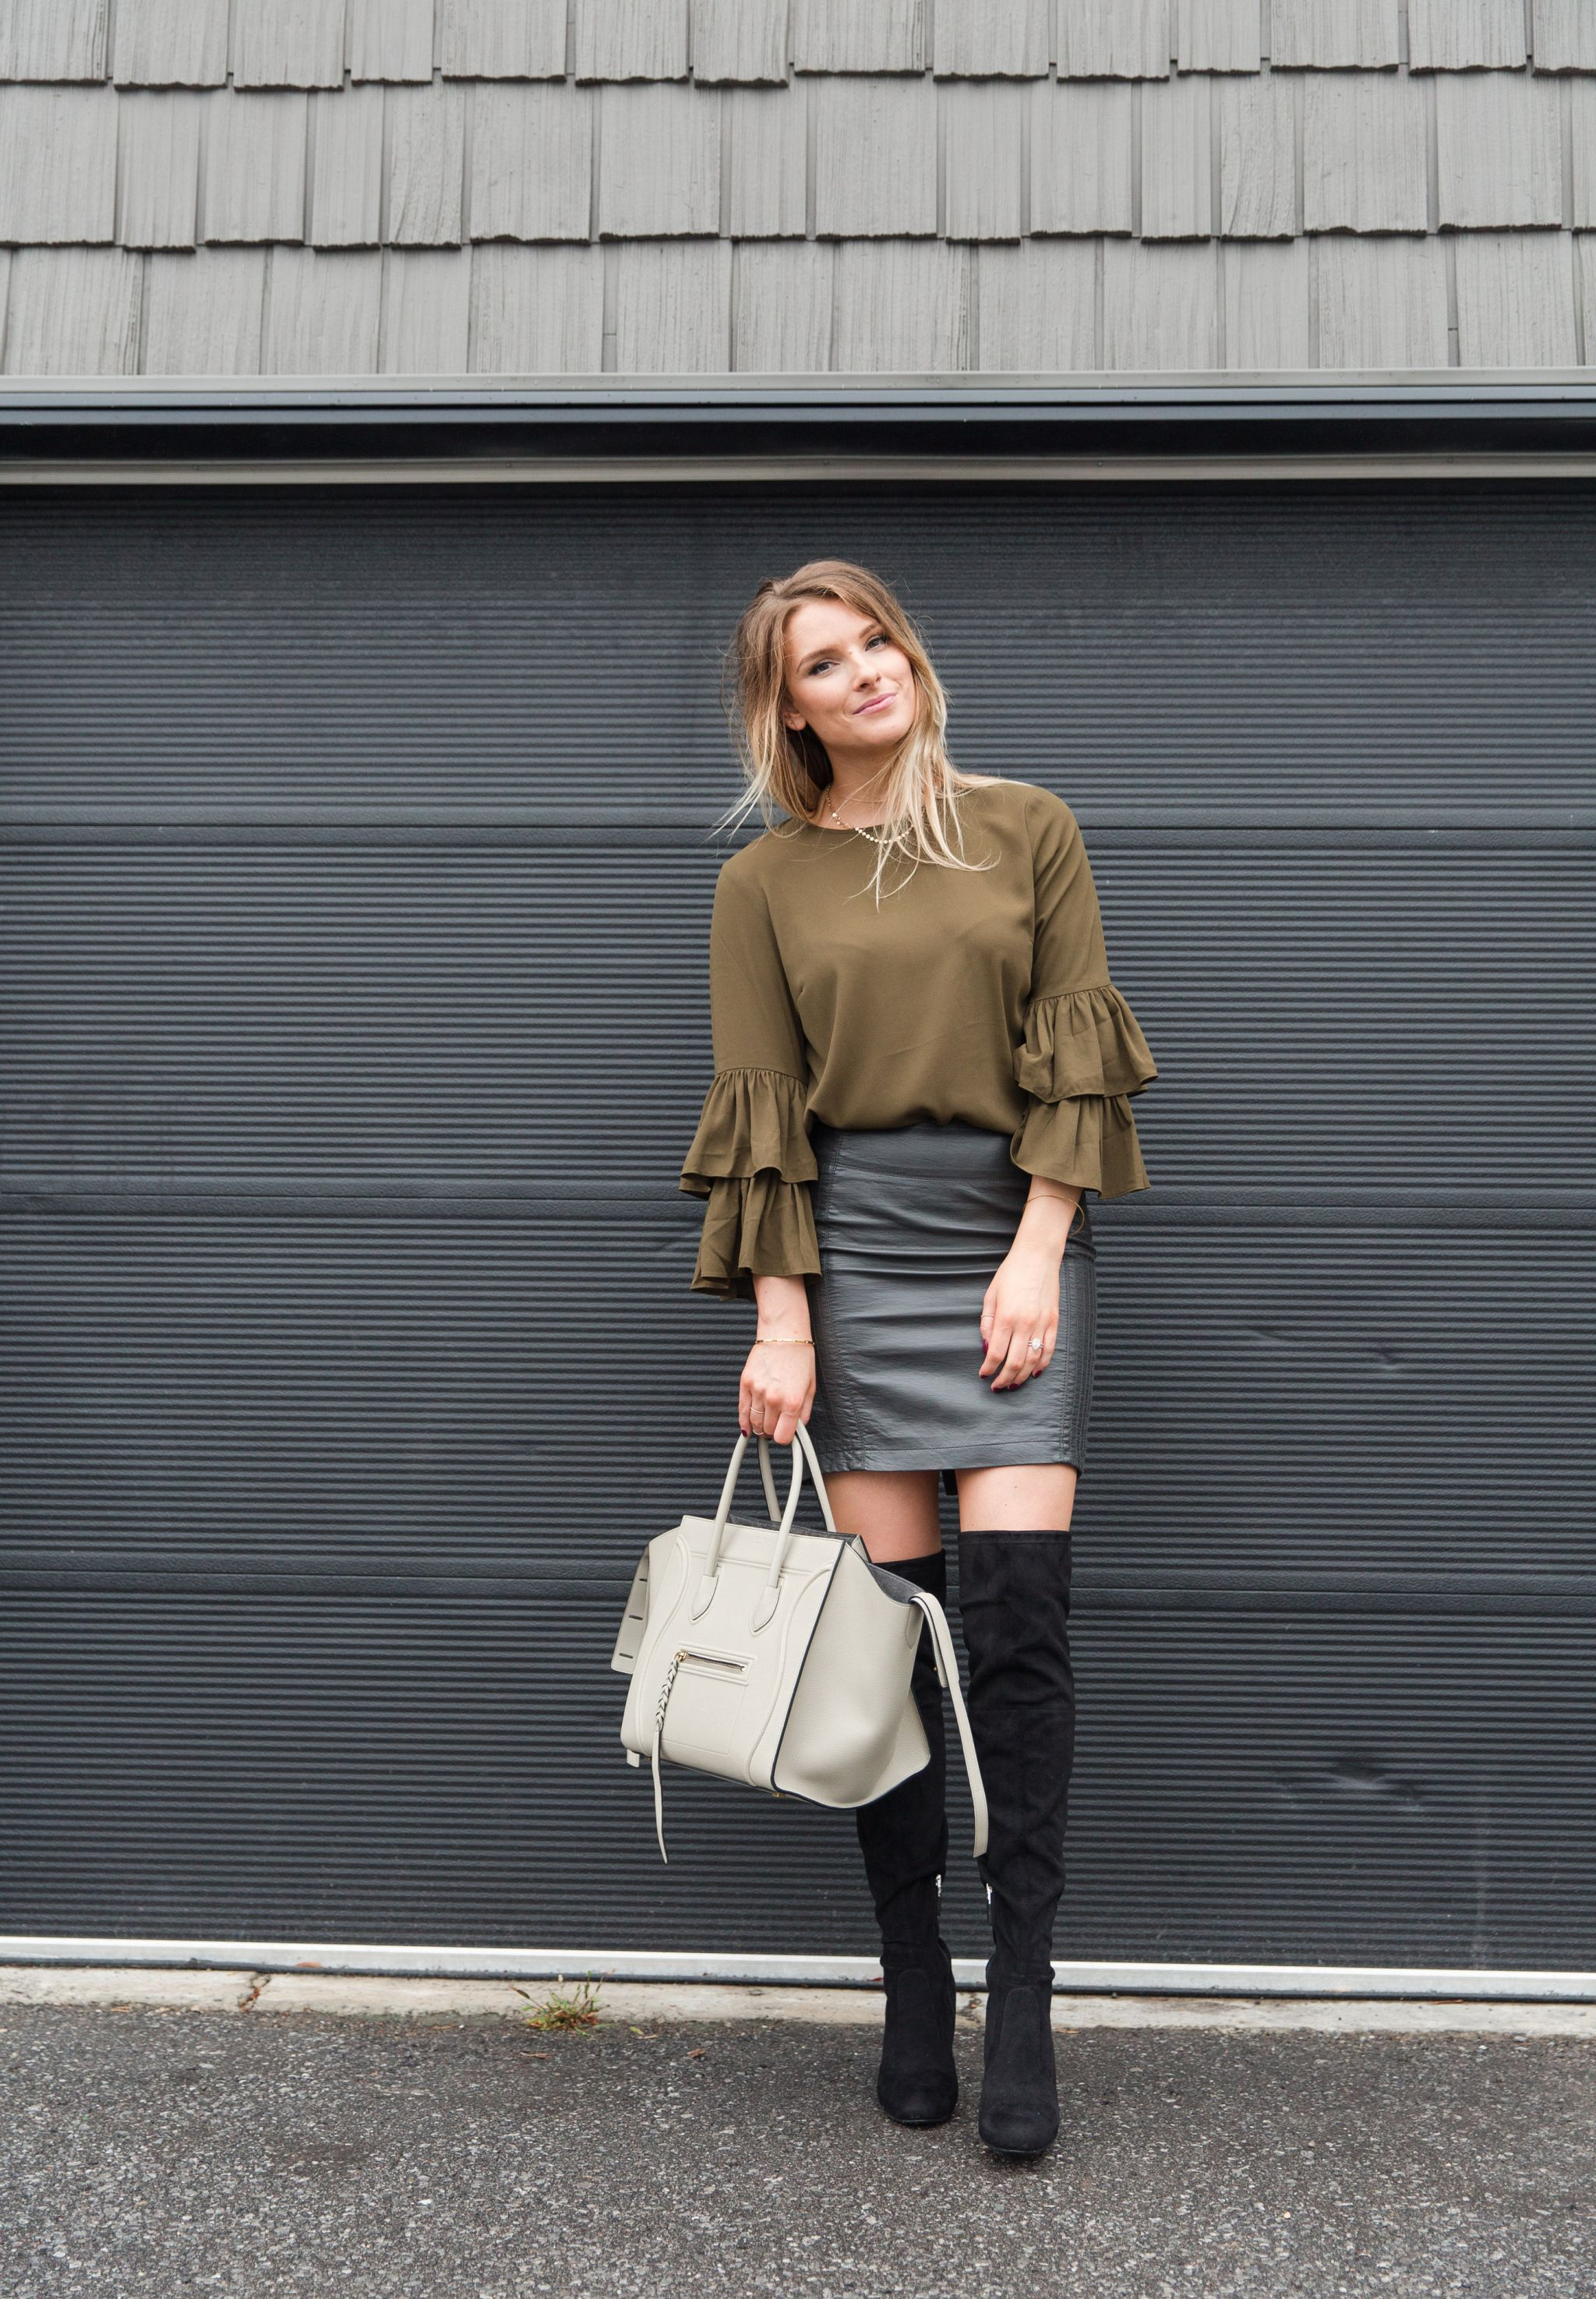 ea8a46012a life with aco, bell sleeve top, celine bag, otk boots, fall outfit inspo